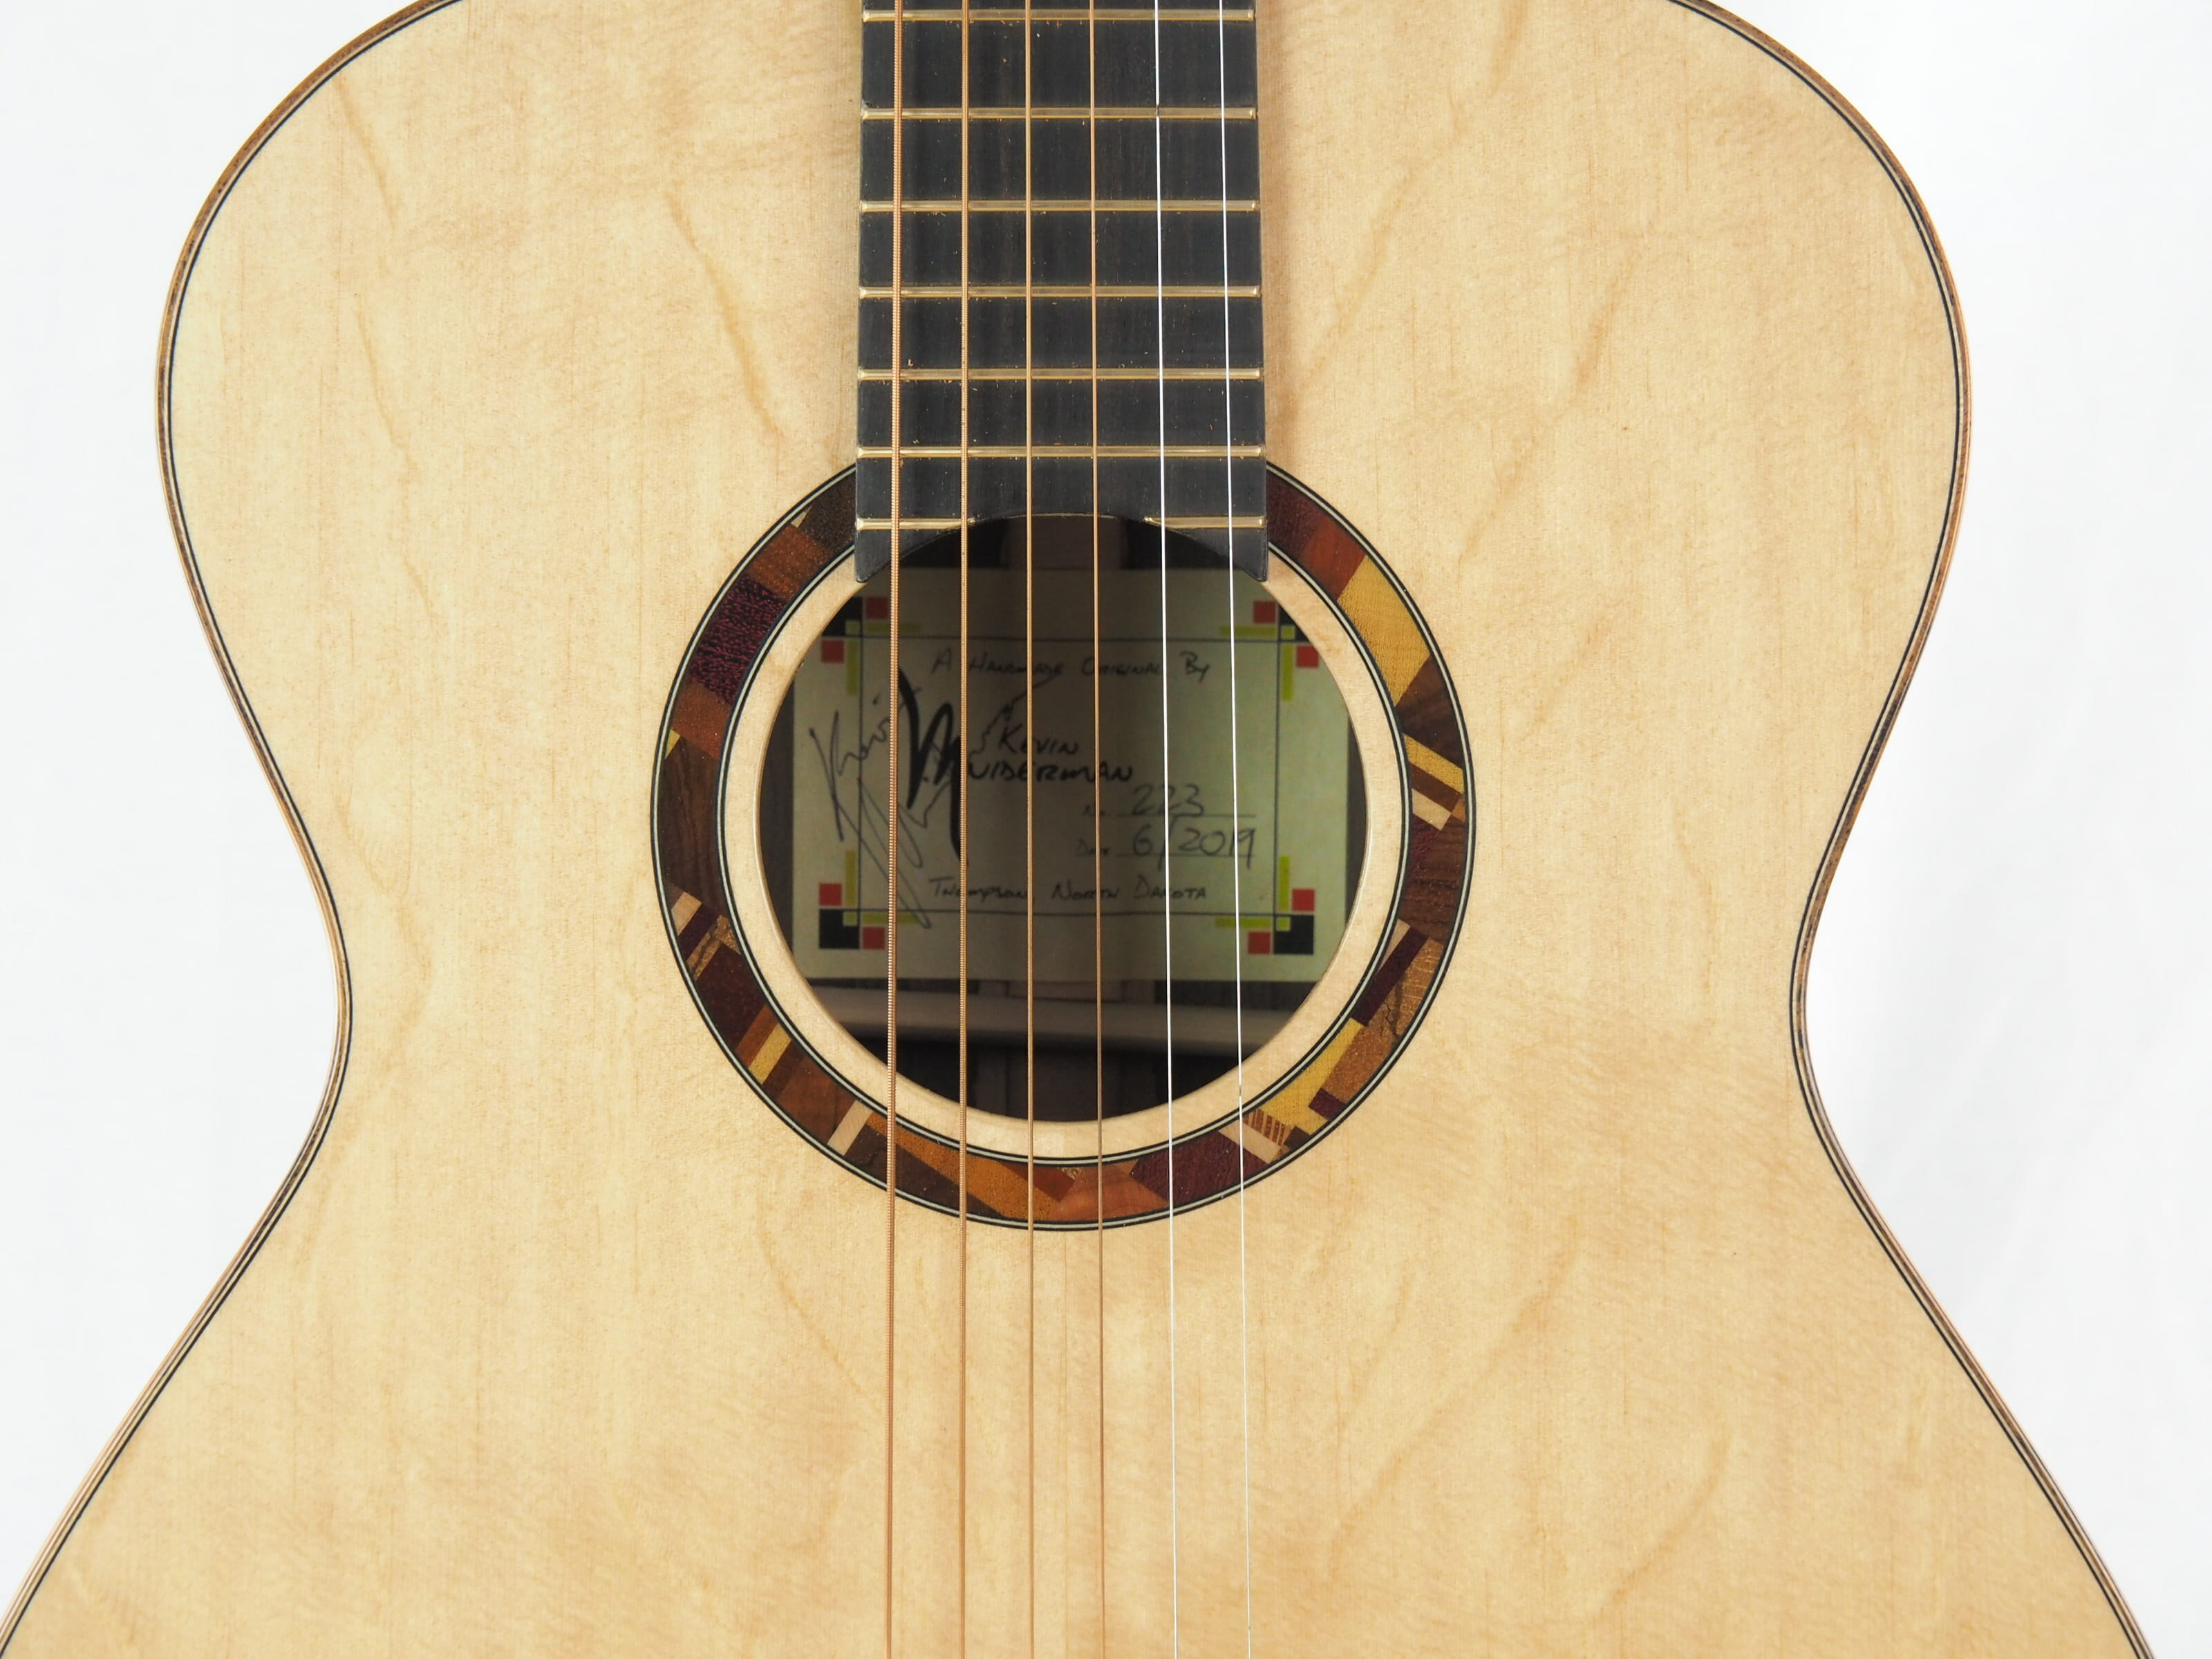 Kevin Muiderman luthier guitare acoustique No 19MUI223-09